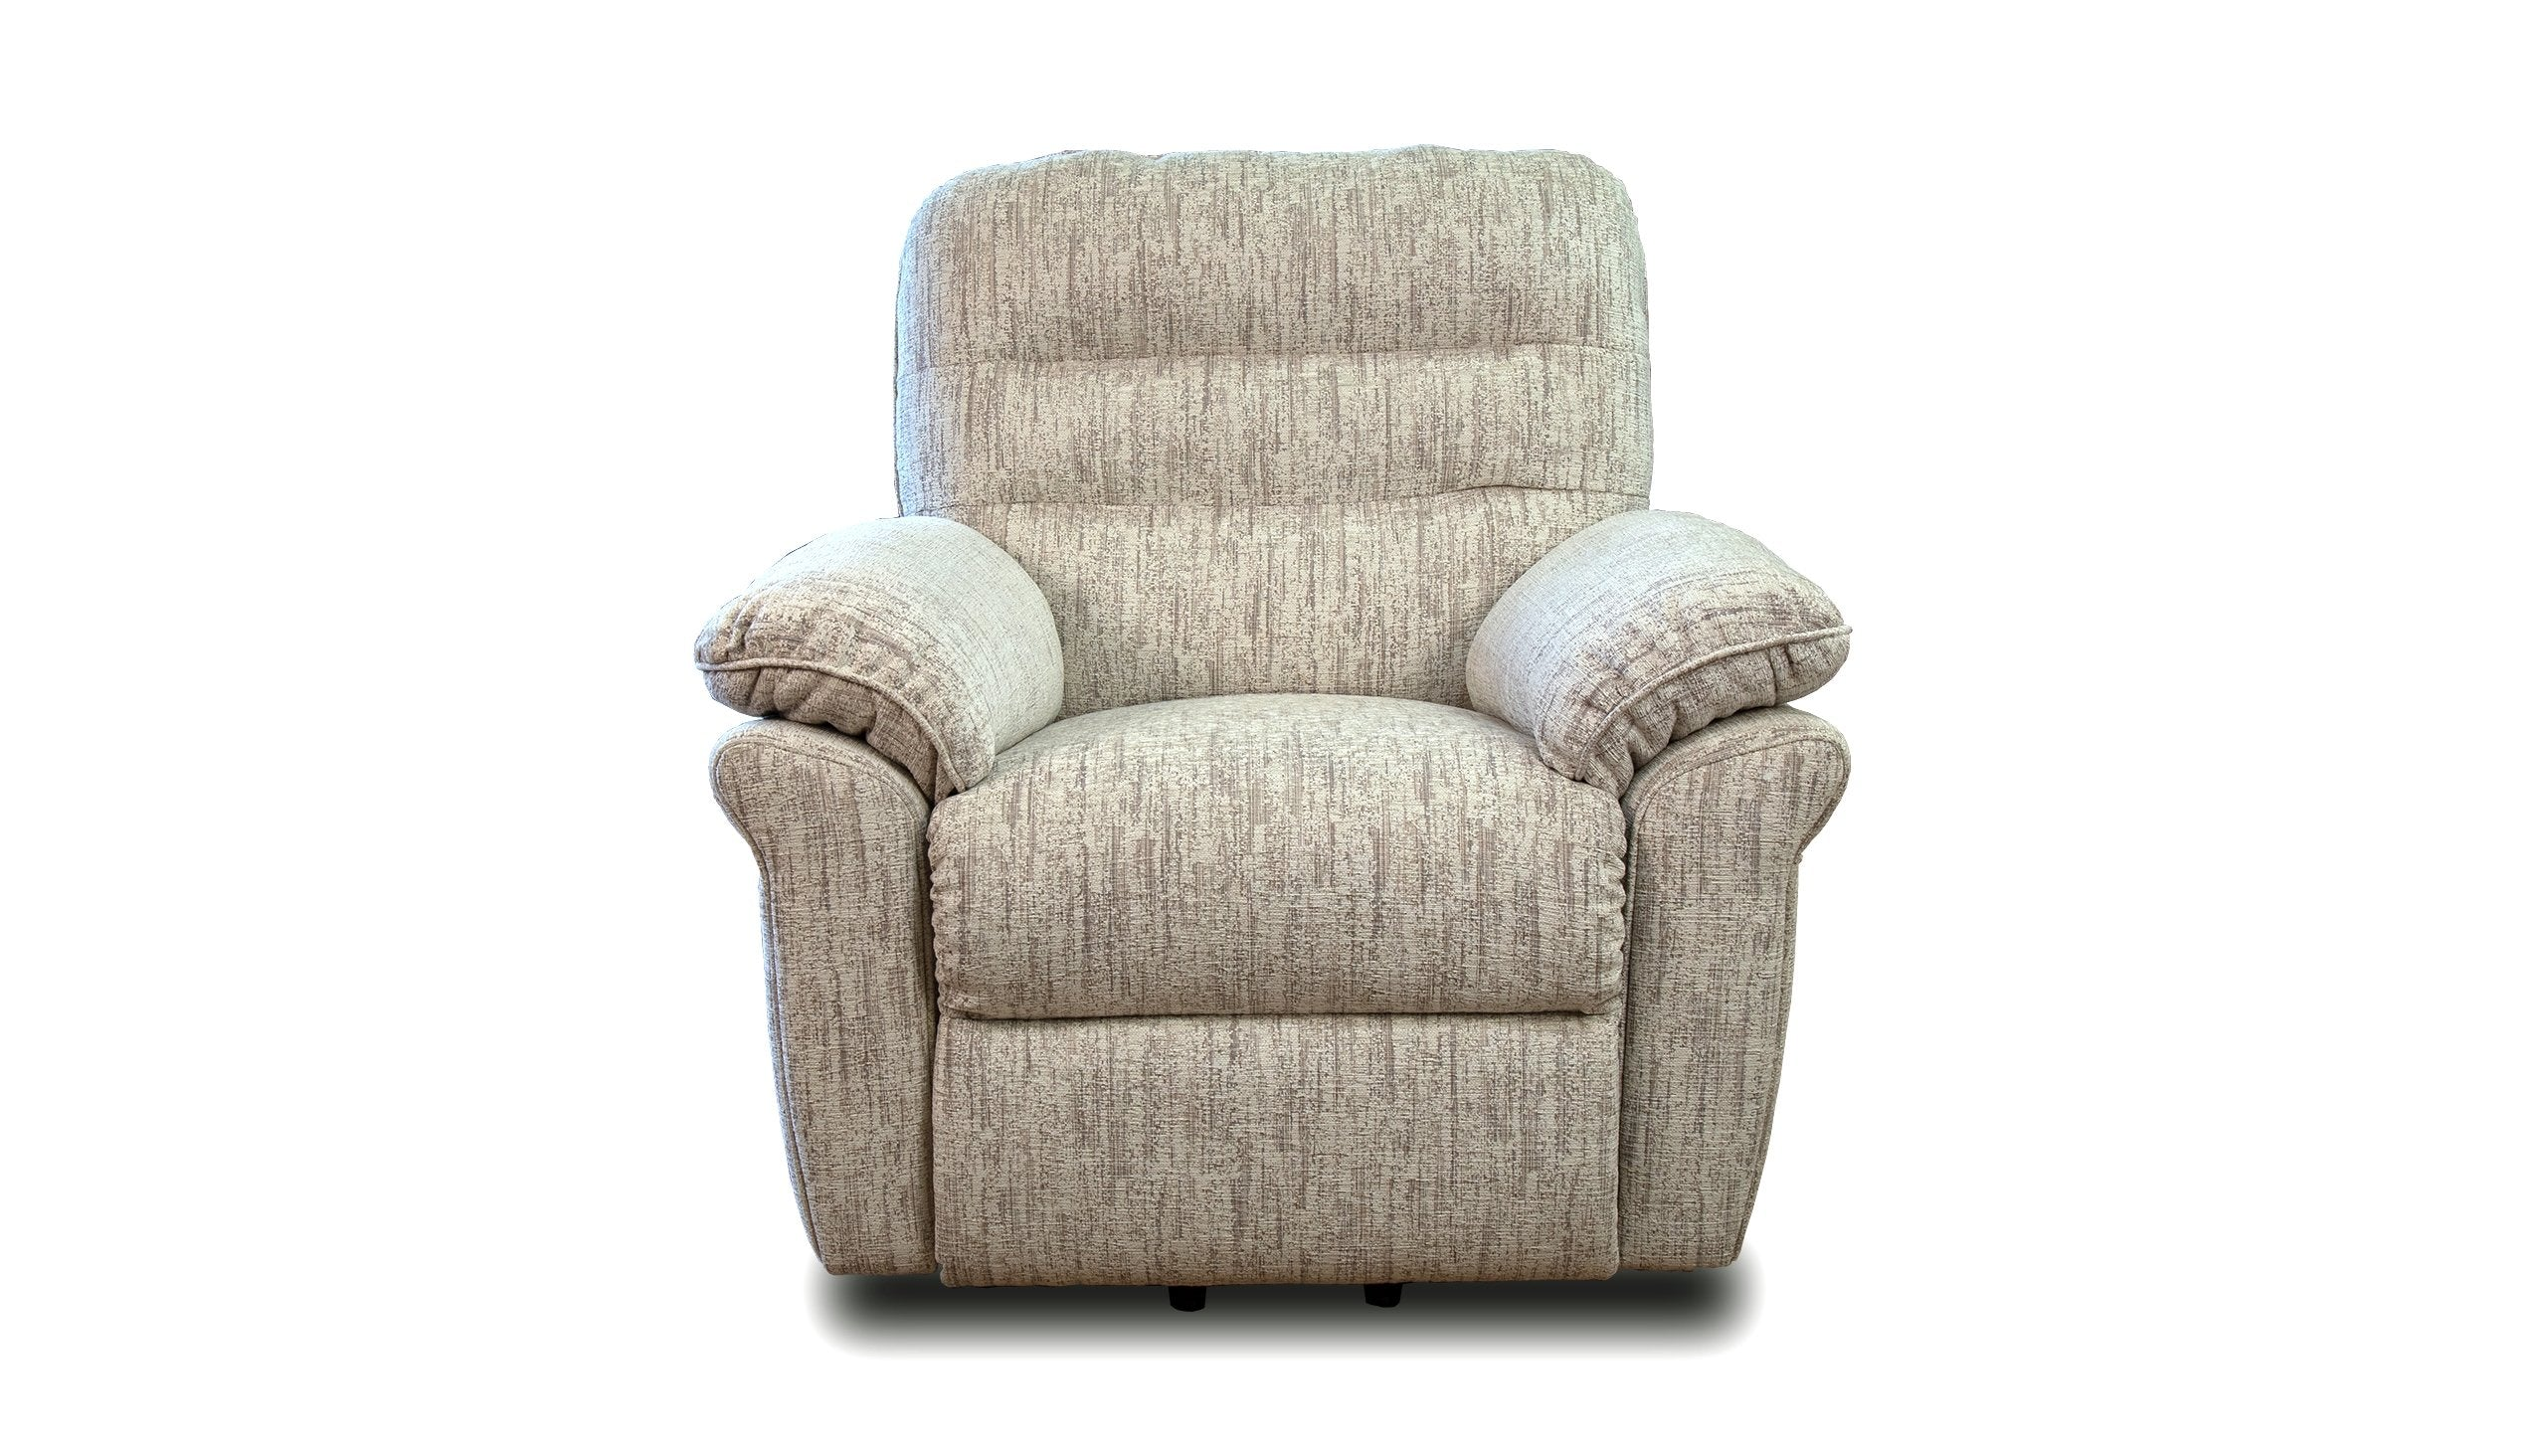 Kendal Reclining Armchair - AHF Furniture & Carpets